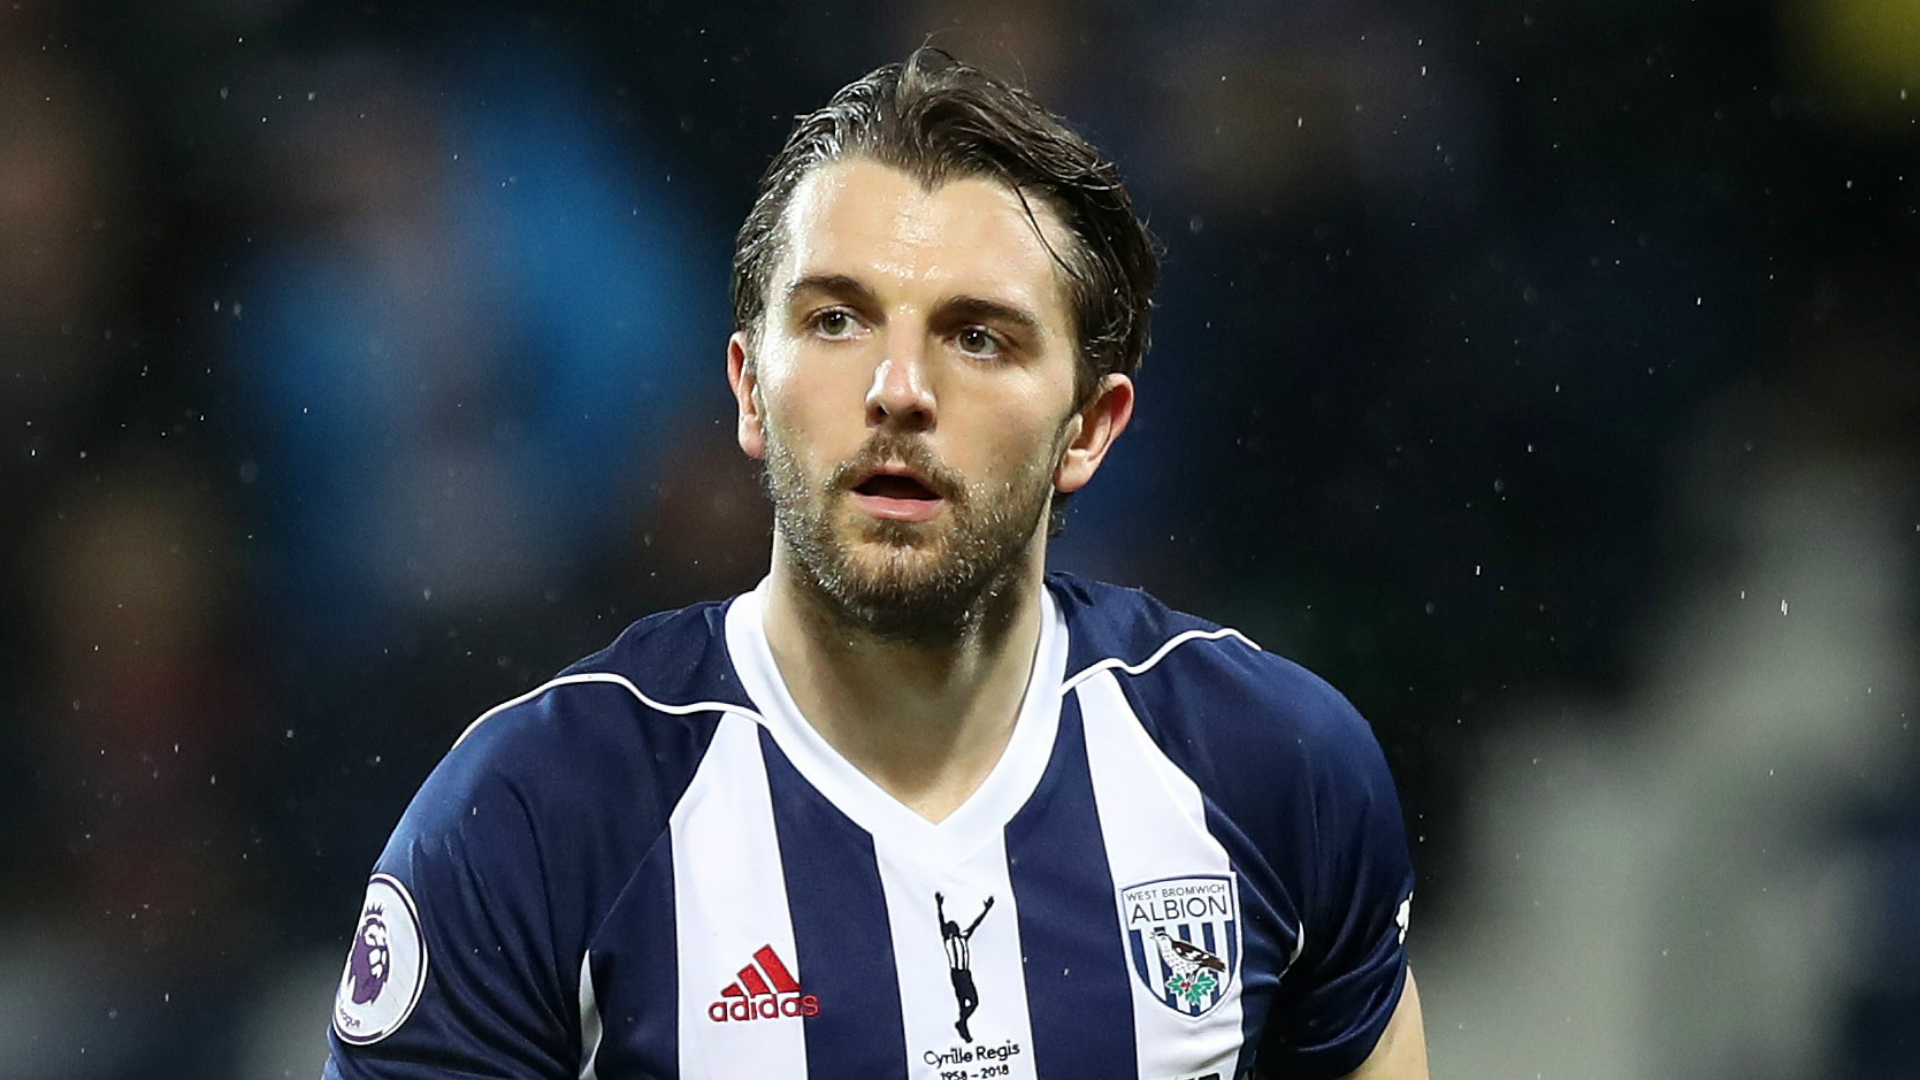 Jay Rodriguez charged with allegedly racially abusing Gaetan Bong